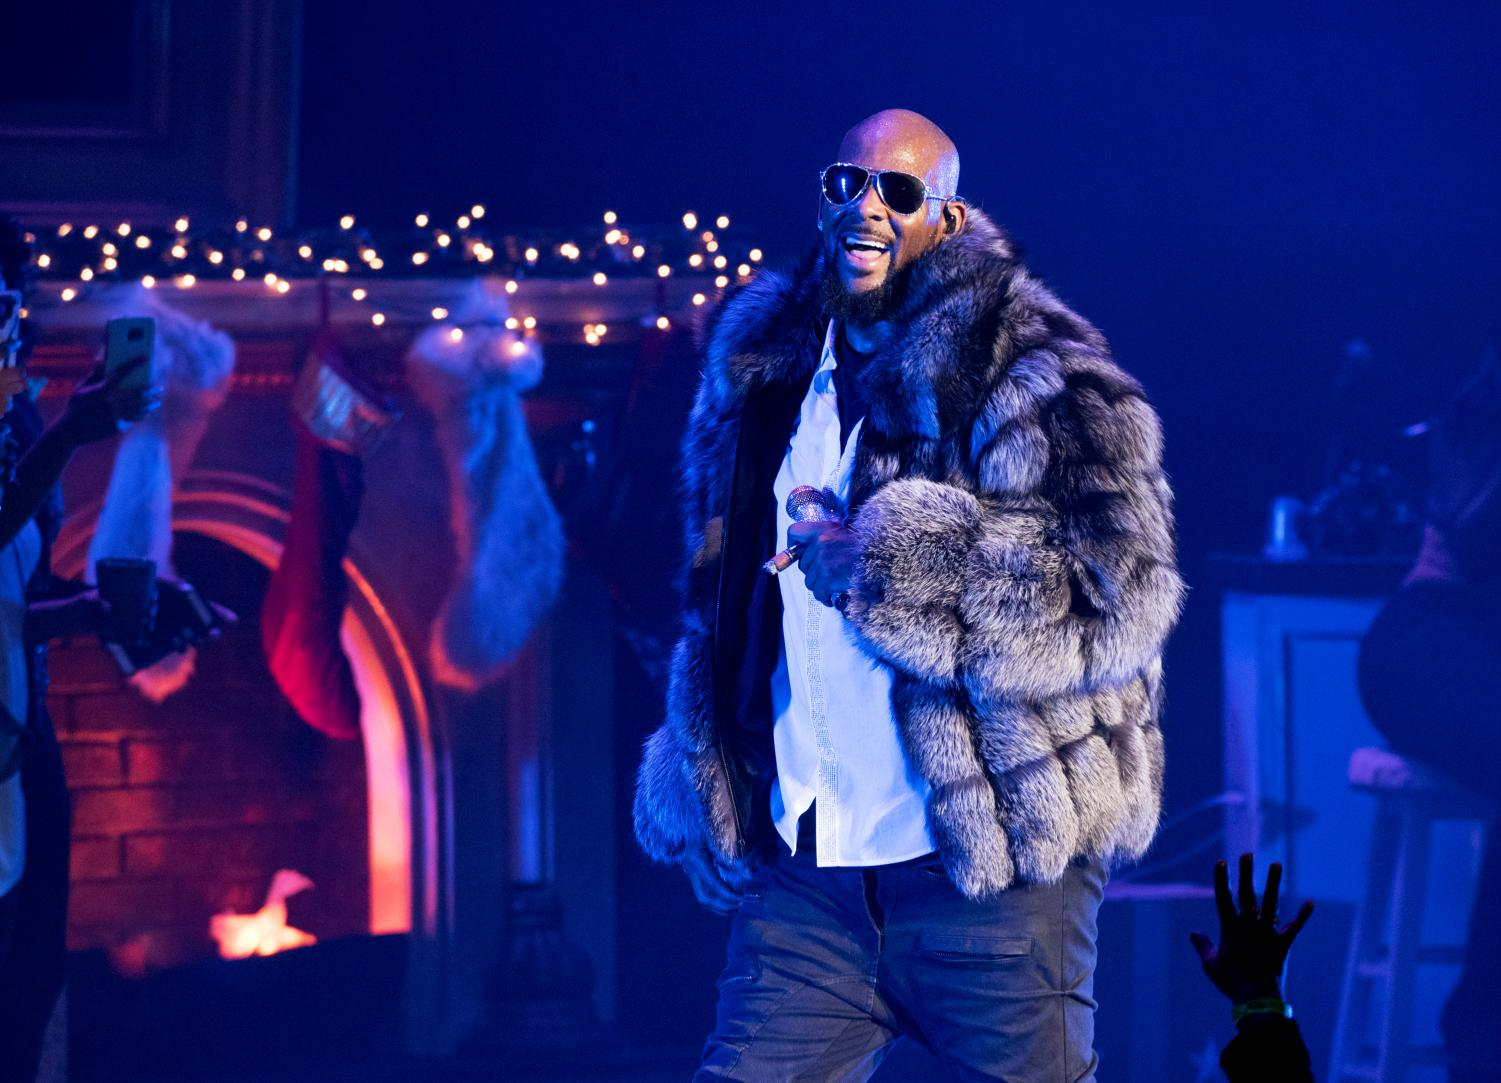 Singer and Rapper R. Kelly performs onstage back in 2013 amidst multiple accusations of sexual assault, which would prompt a controversial protest among women years later.